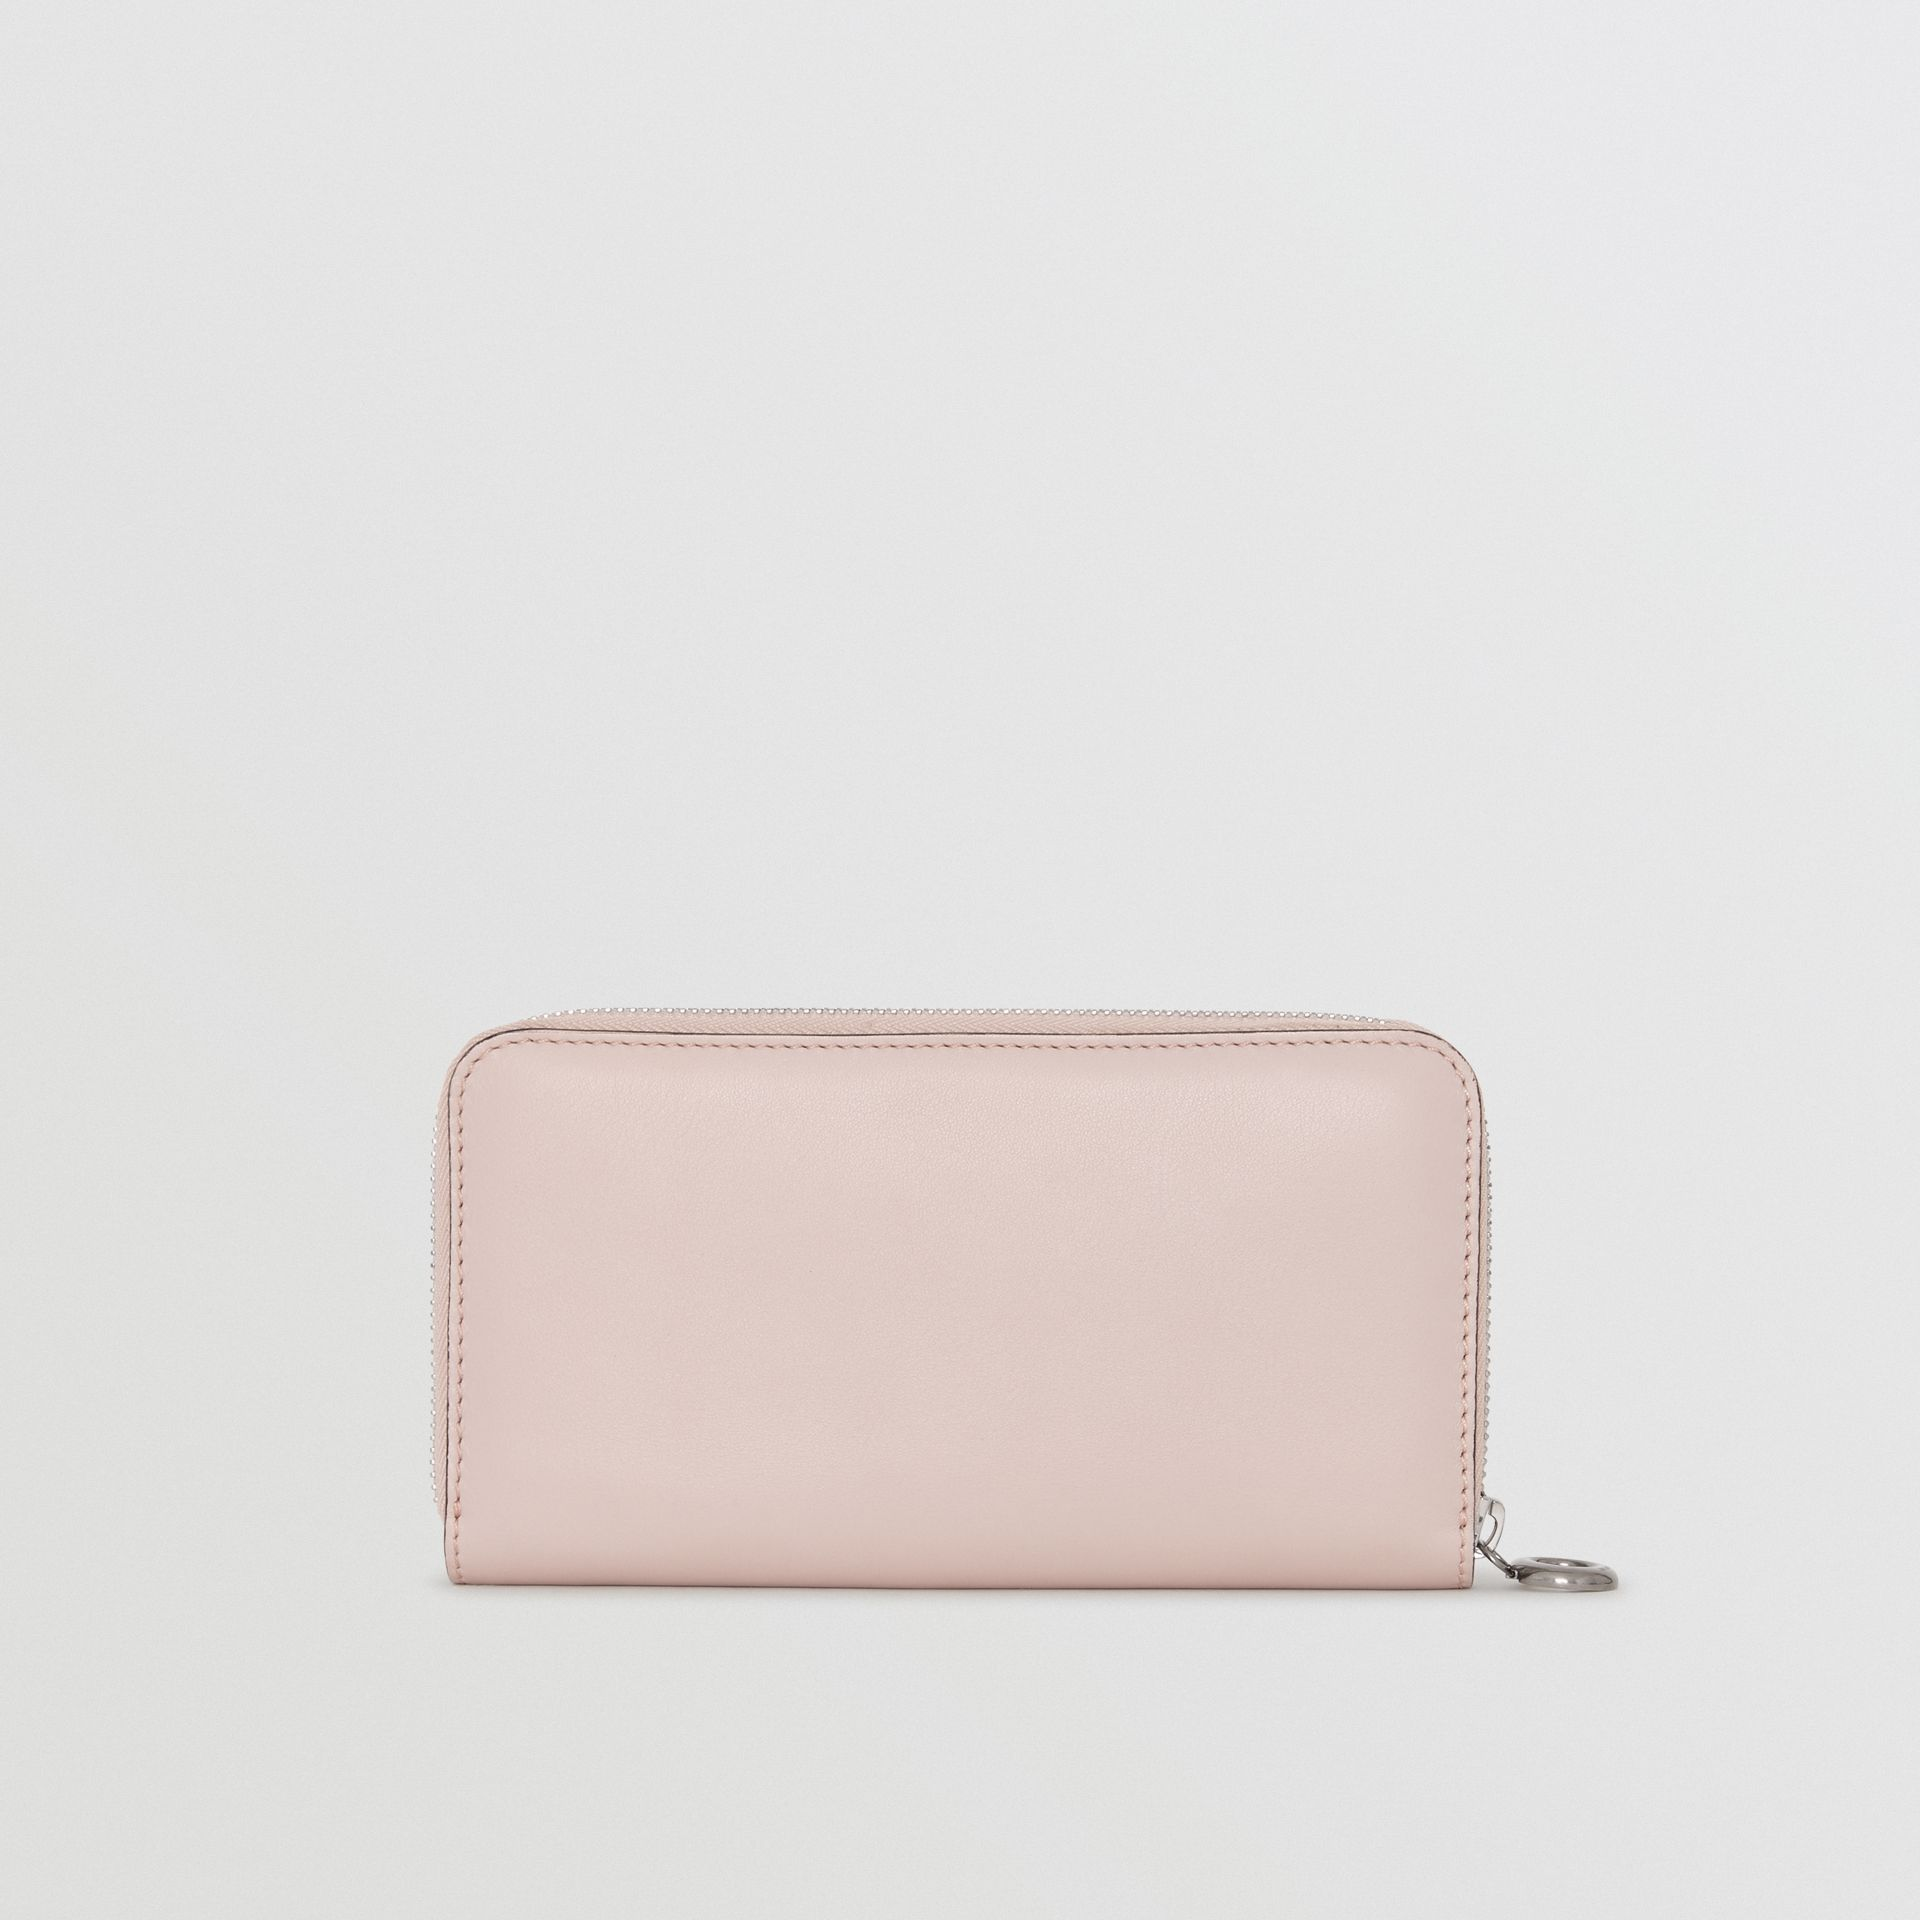 Embossed Crest Two-tone Leather Ziparound Wallet in Chalk Pink - Women | Burberry United States - gallery image 4